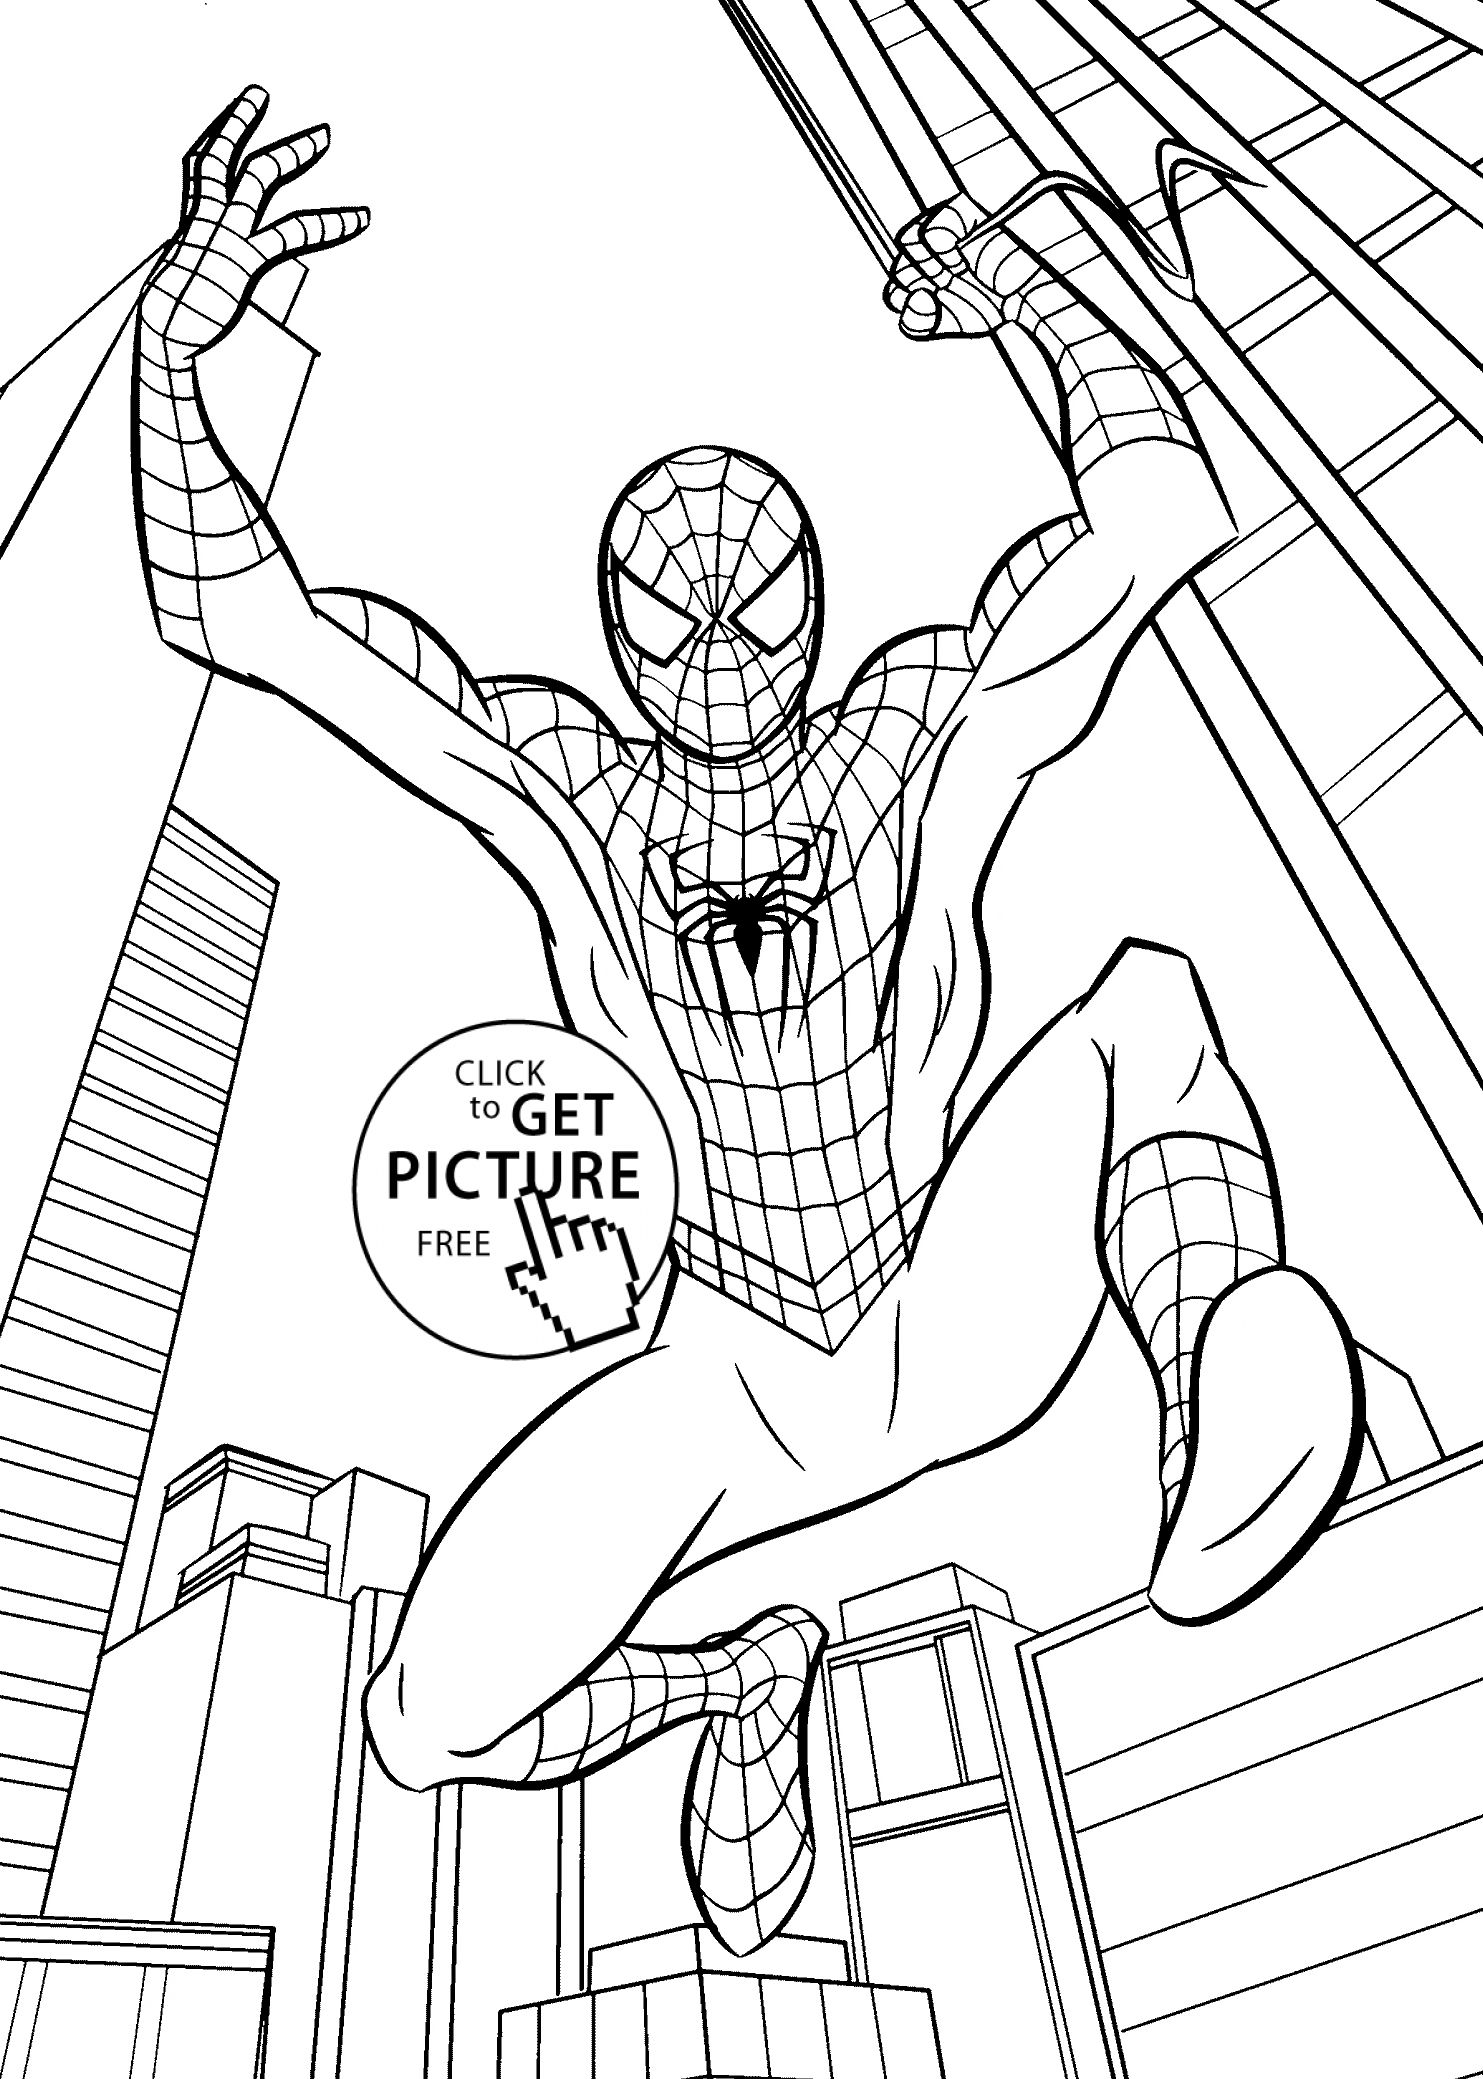 Spiderman Drawings Easy Spiderman Drawings For Kids How To Draw Spiderman Easy Step By Avengers Coloring Pages Superhero Coloring Pages Superhero Coloring